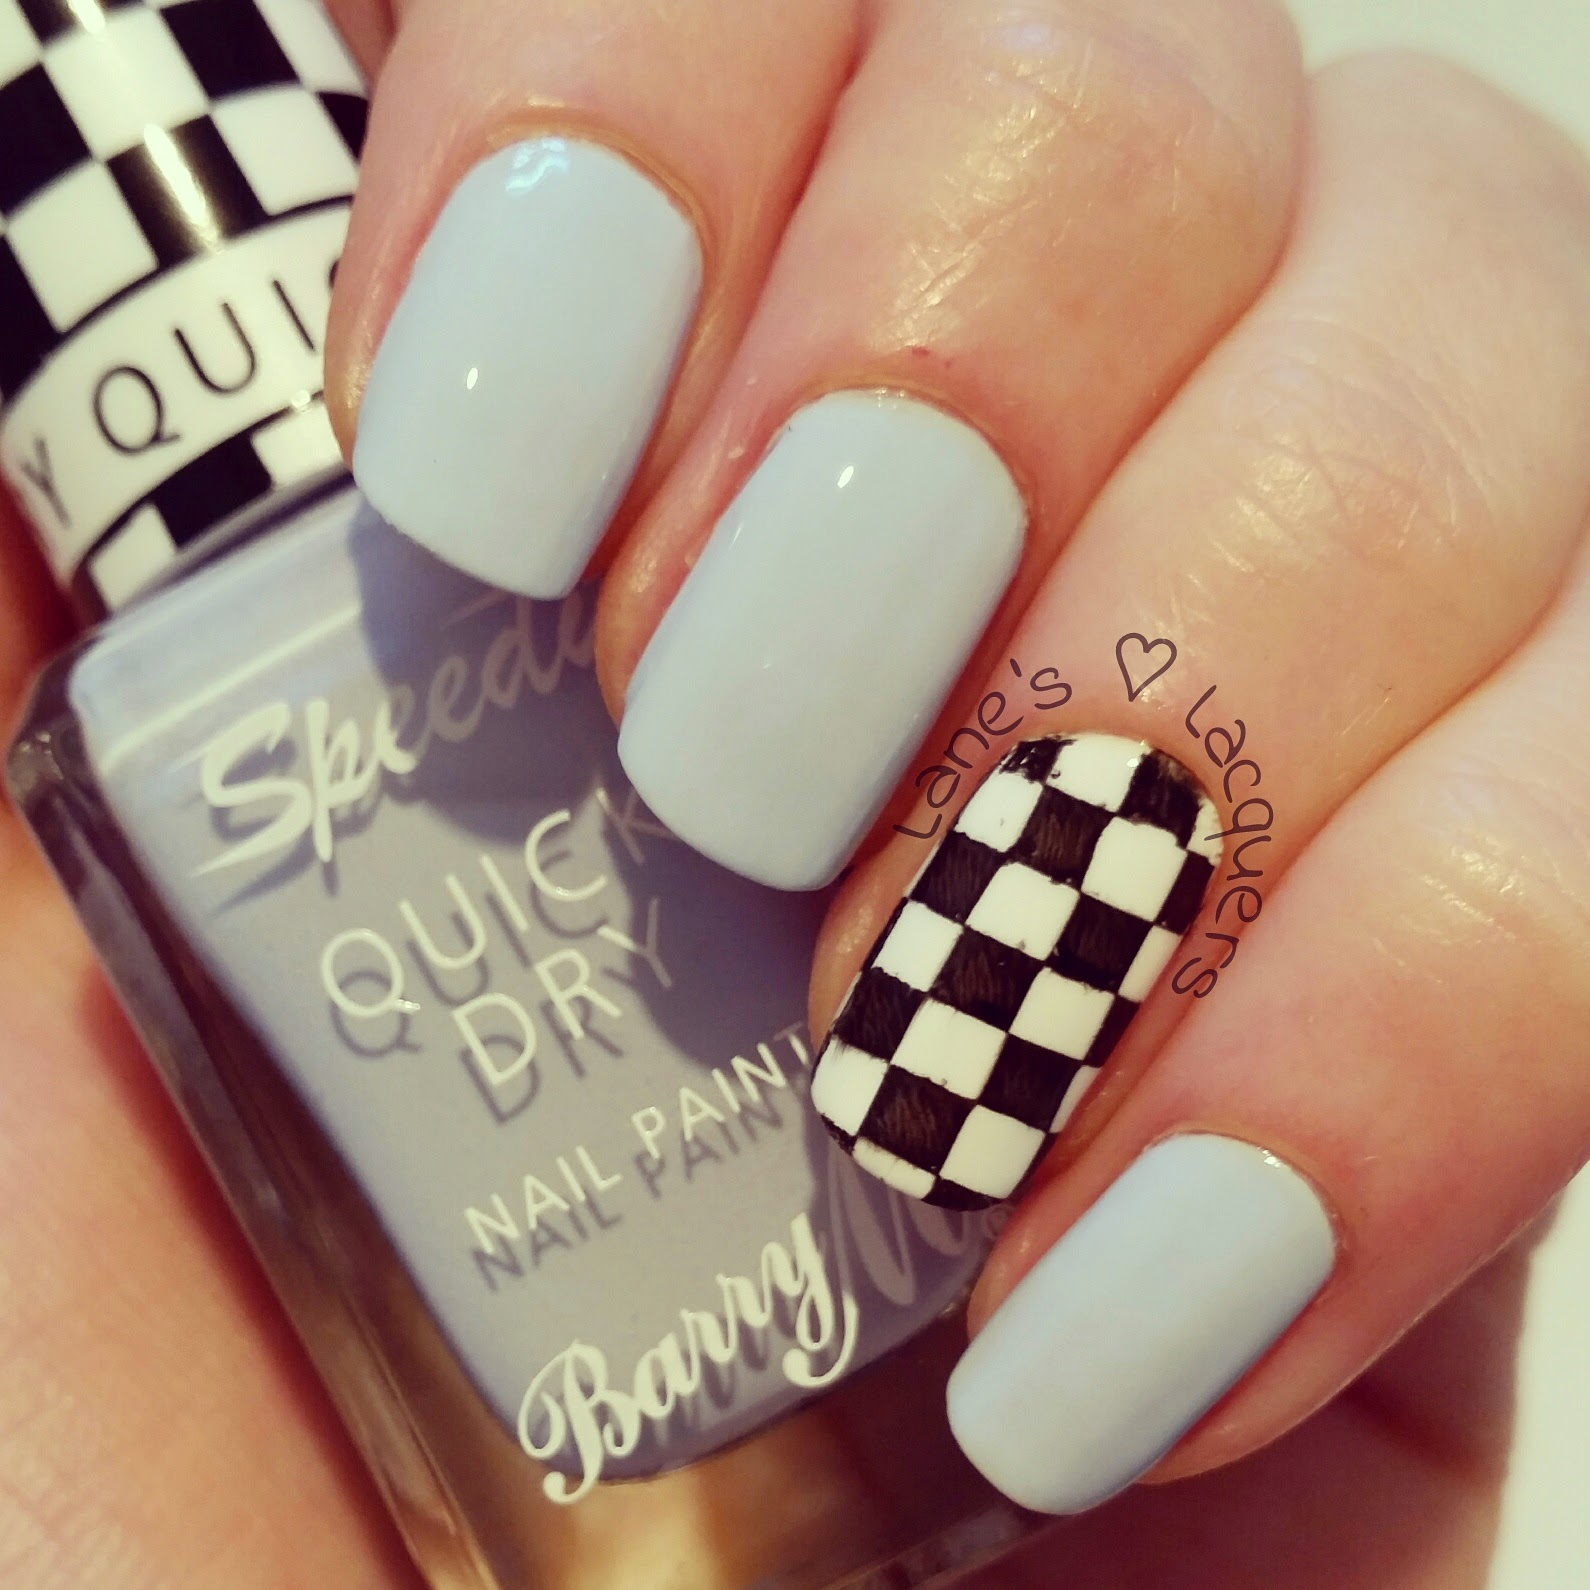 new-barry-m-speedy-quick-dry-eat-my-dust-swatch-manicure (2)